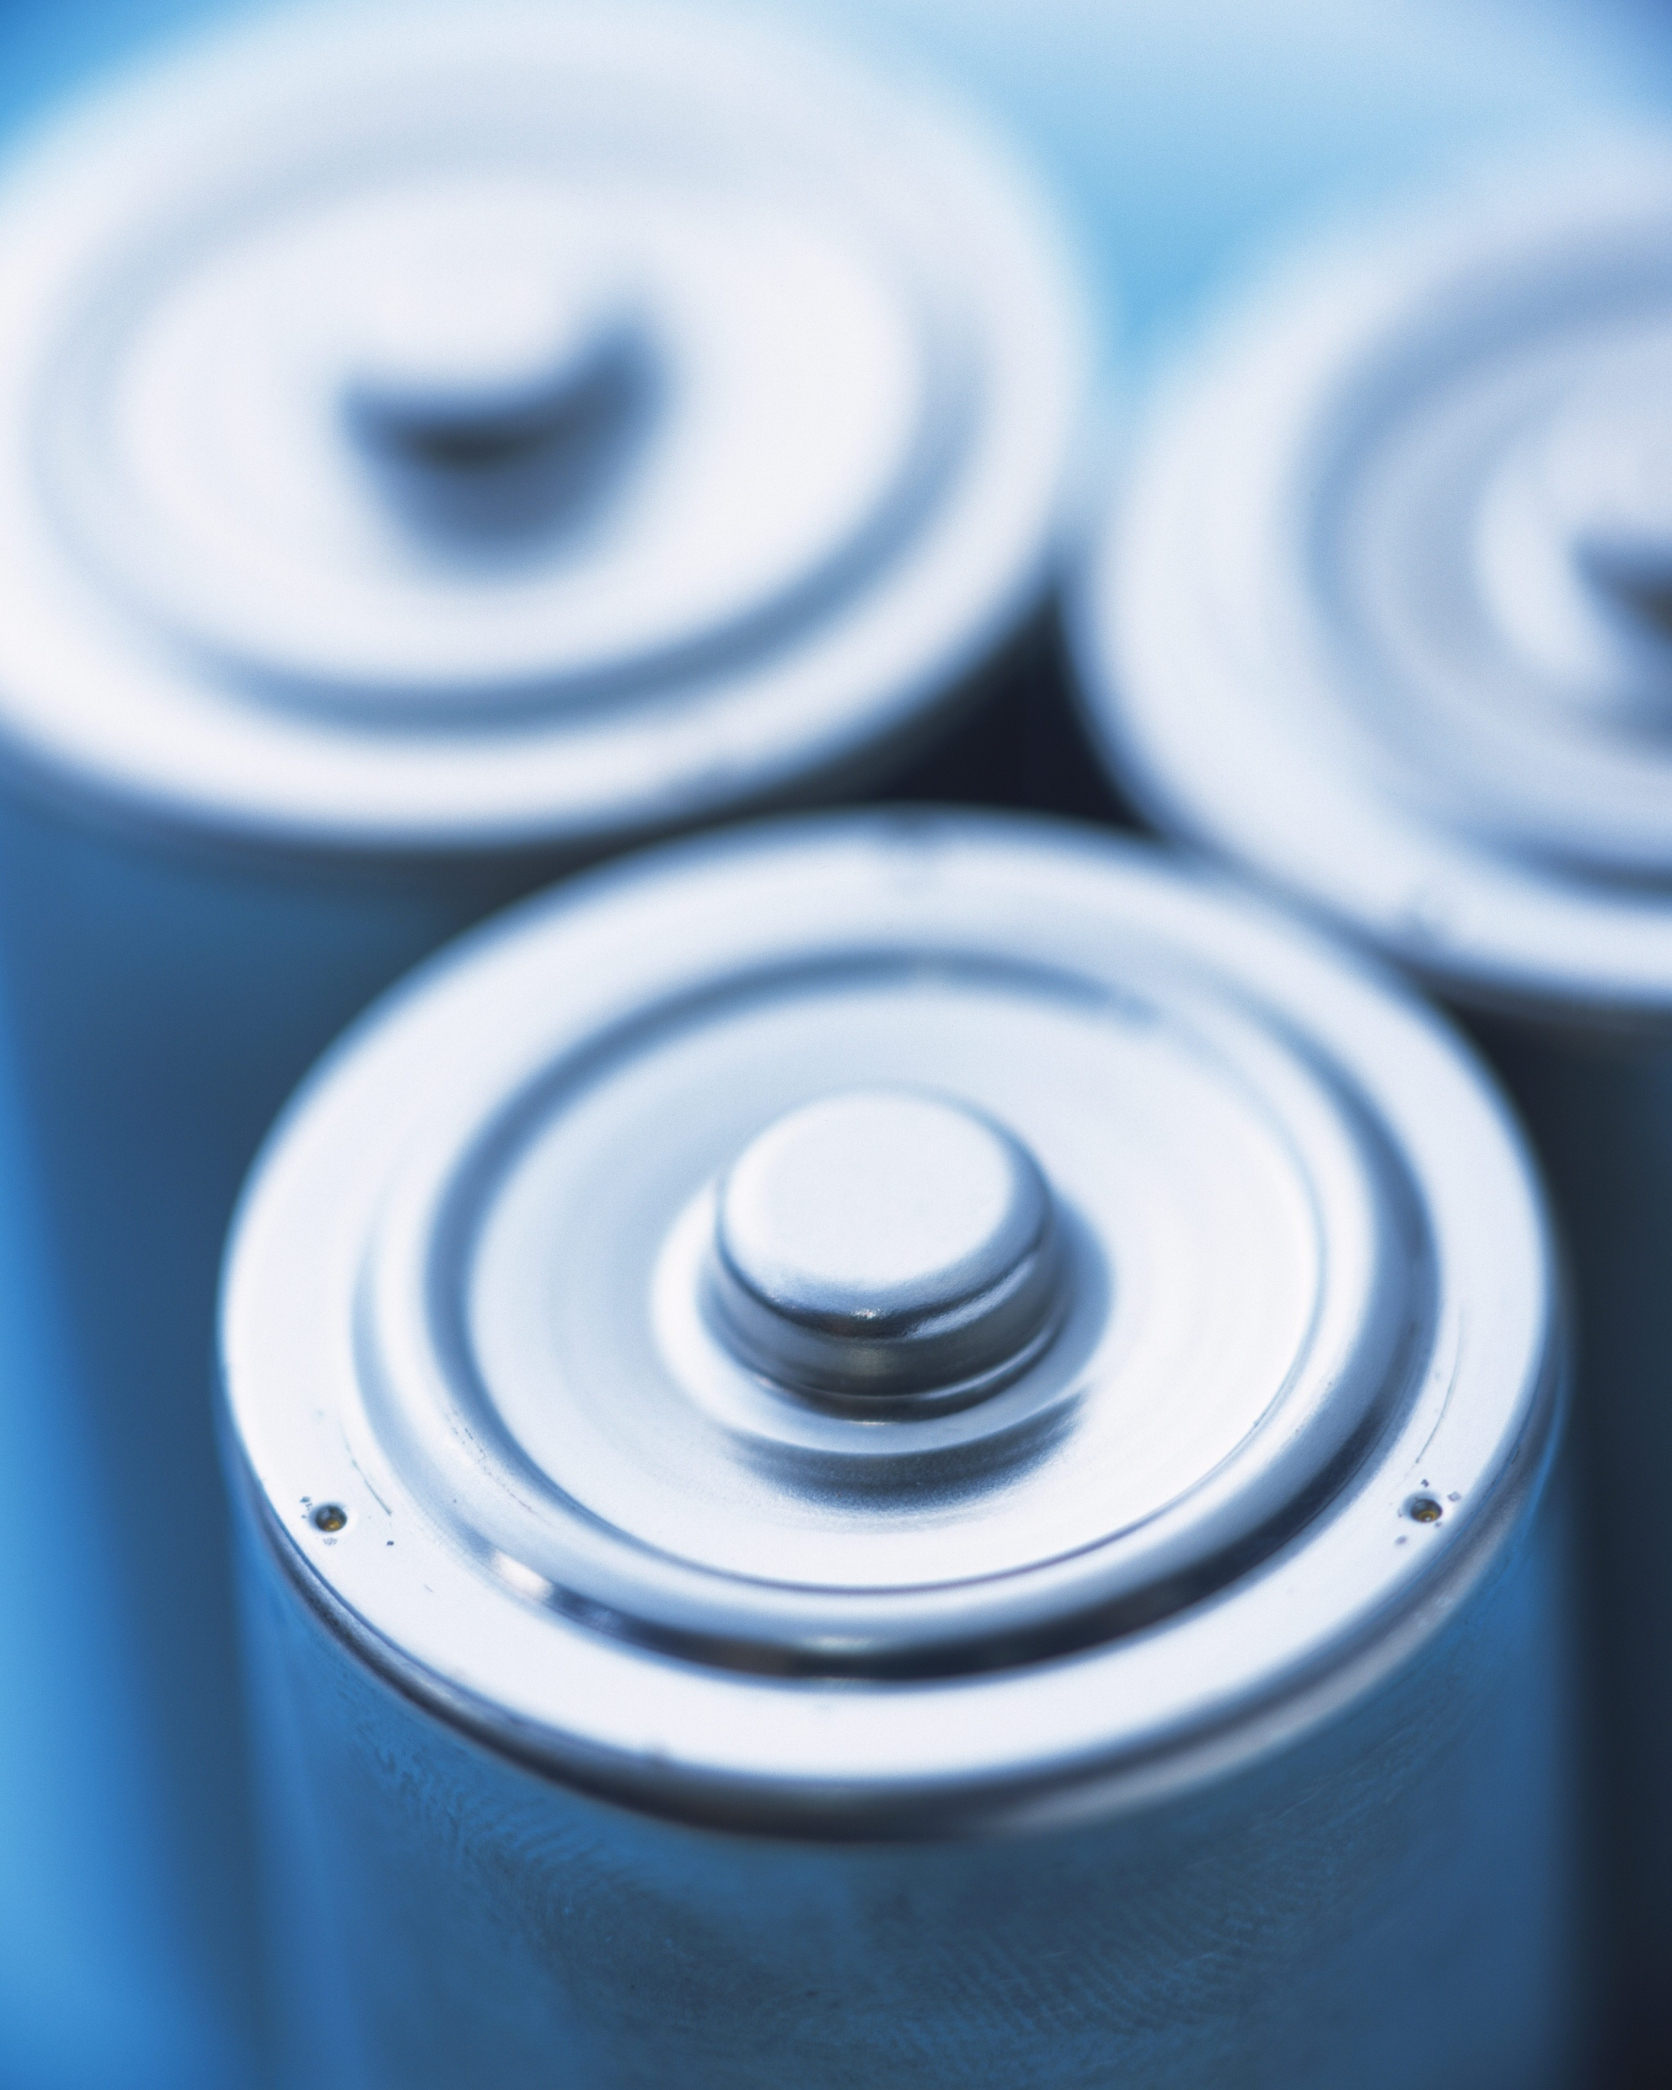 Beware of dangers with banged-up batteries